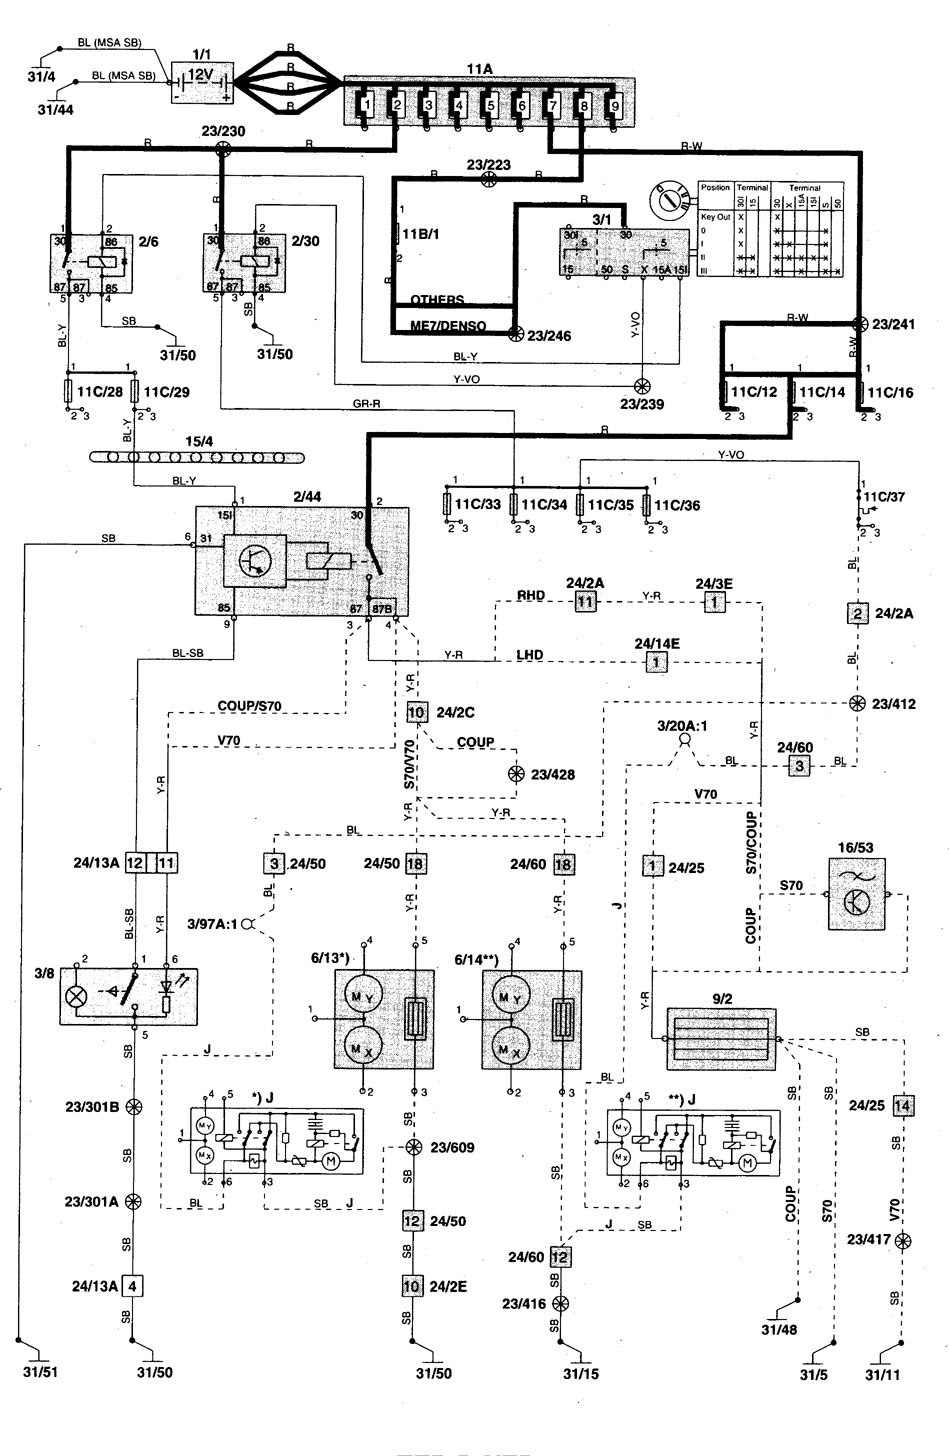 1998 Volvo S70 Wiring Diagram Component Identification - Wiring Diagram  Direct fund-course - fund-course.siciliabeb.it | Volvo C70 Wiring Diagram |  | fund-course.siciliabeb.it